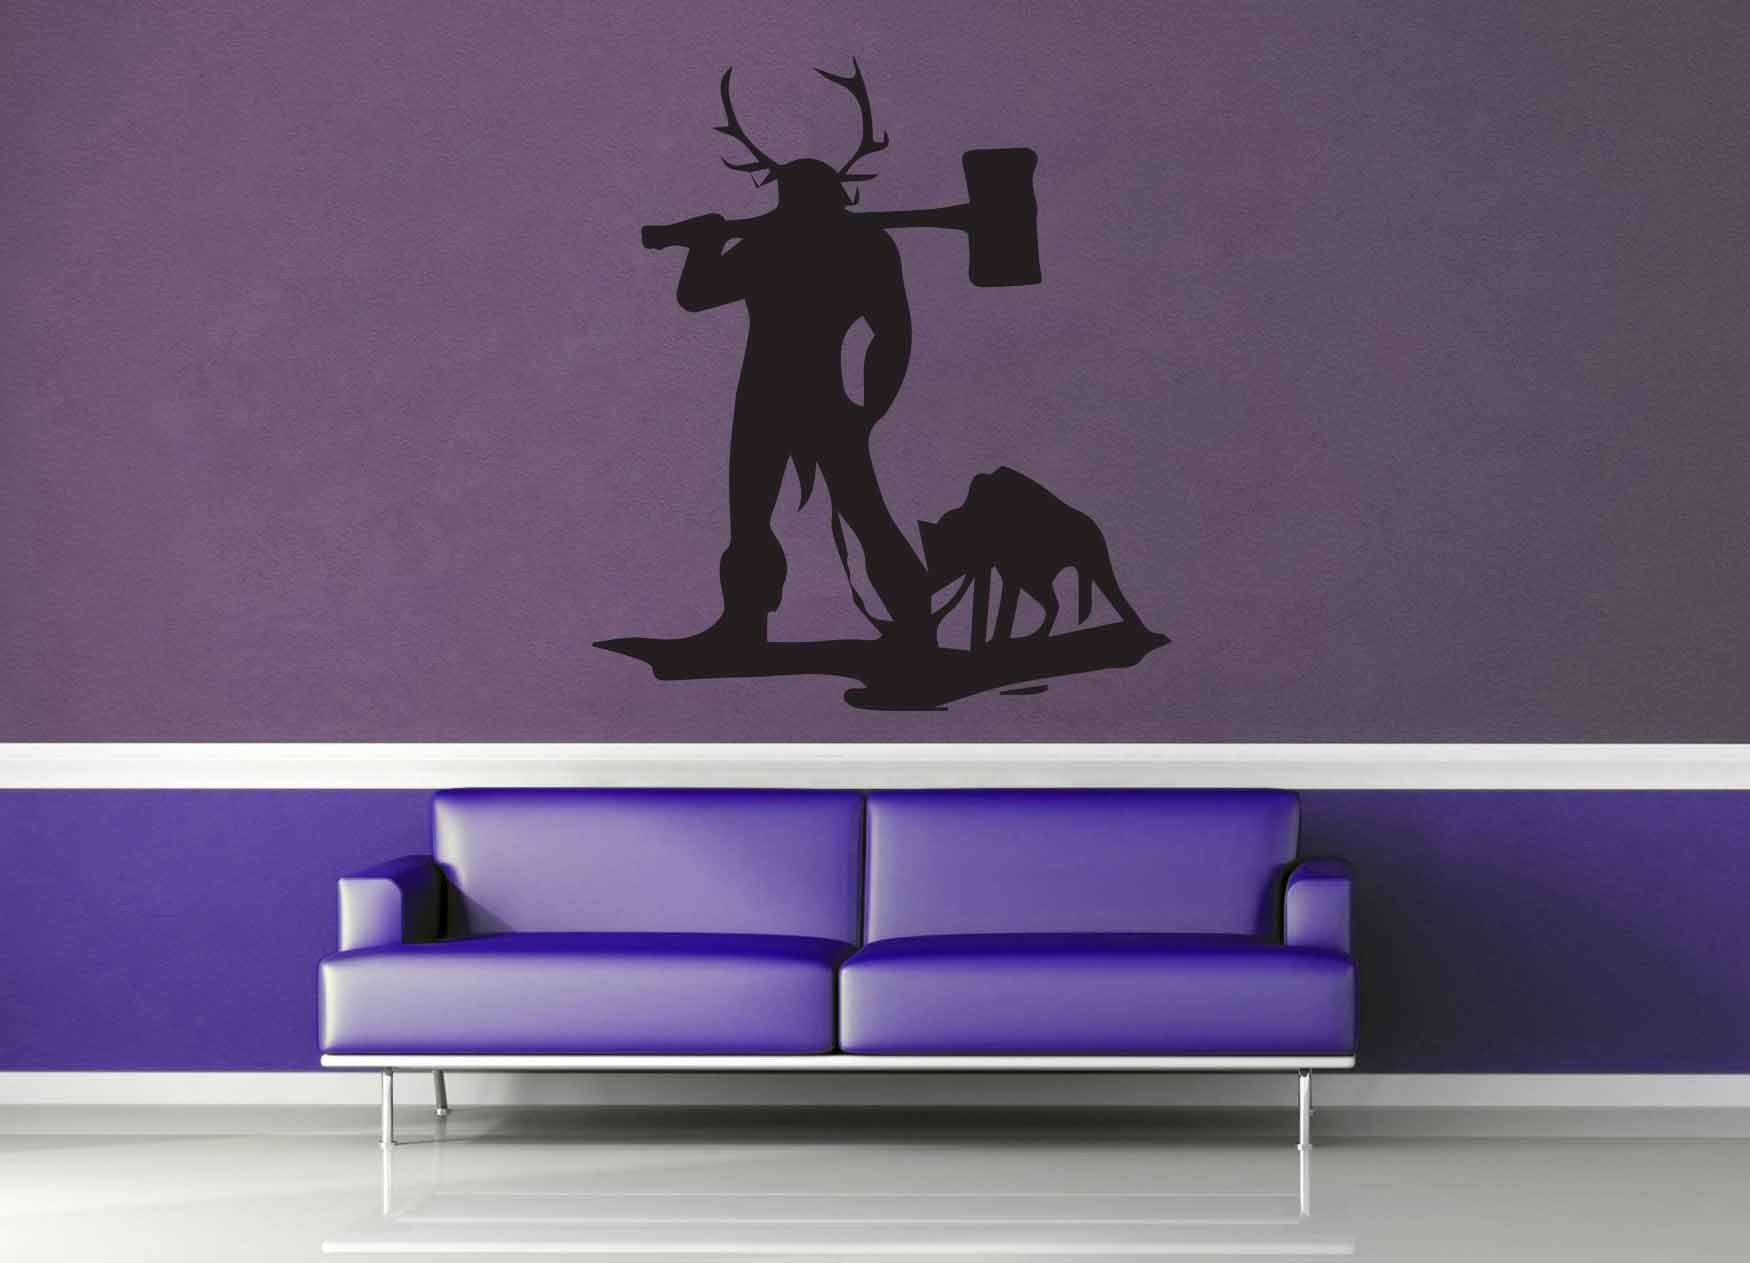 Barbarian Silhouette - Wall Decal